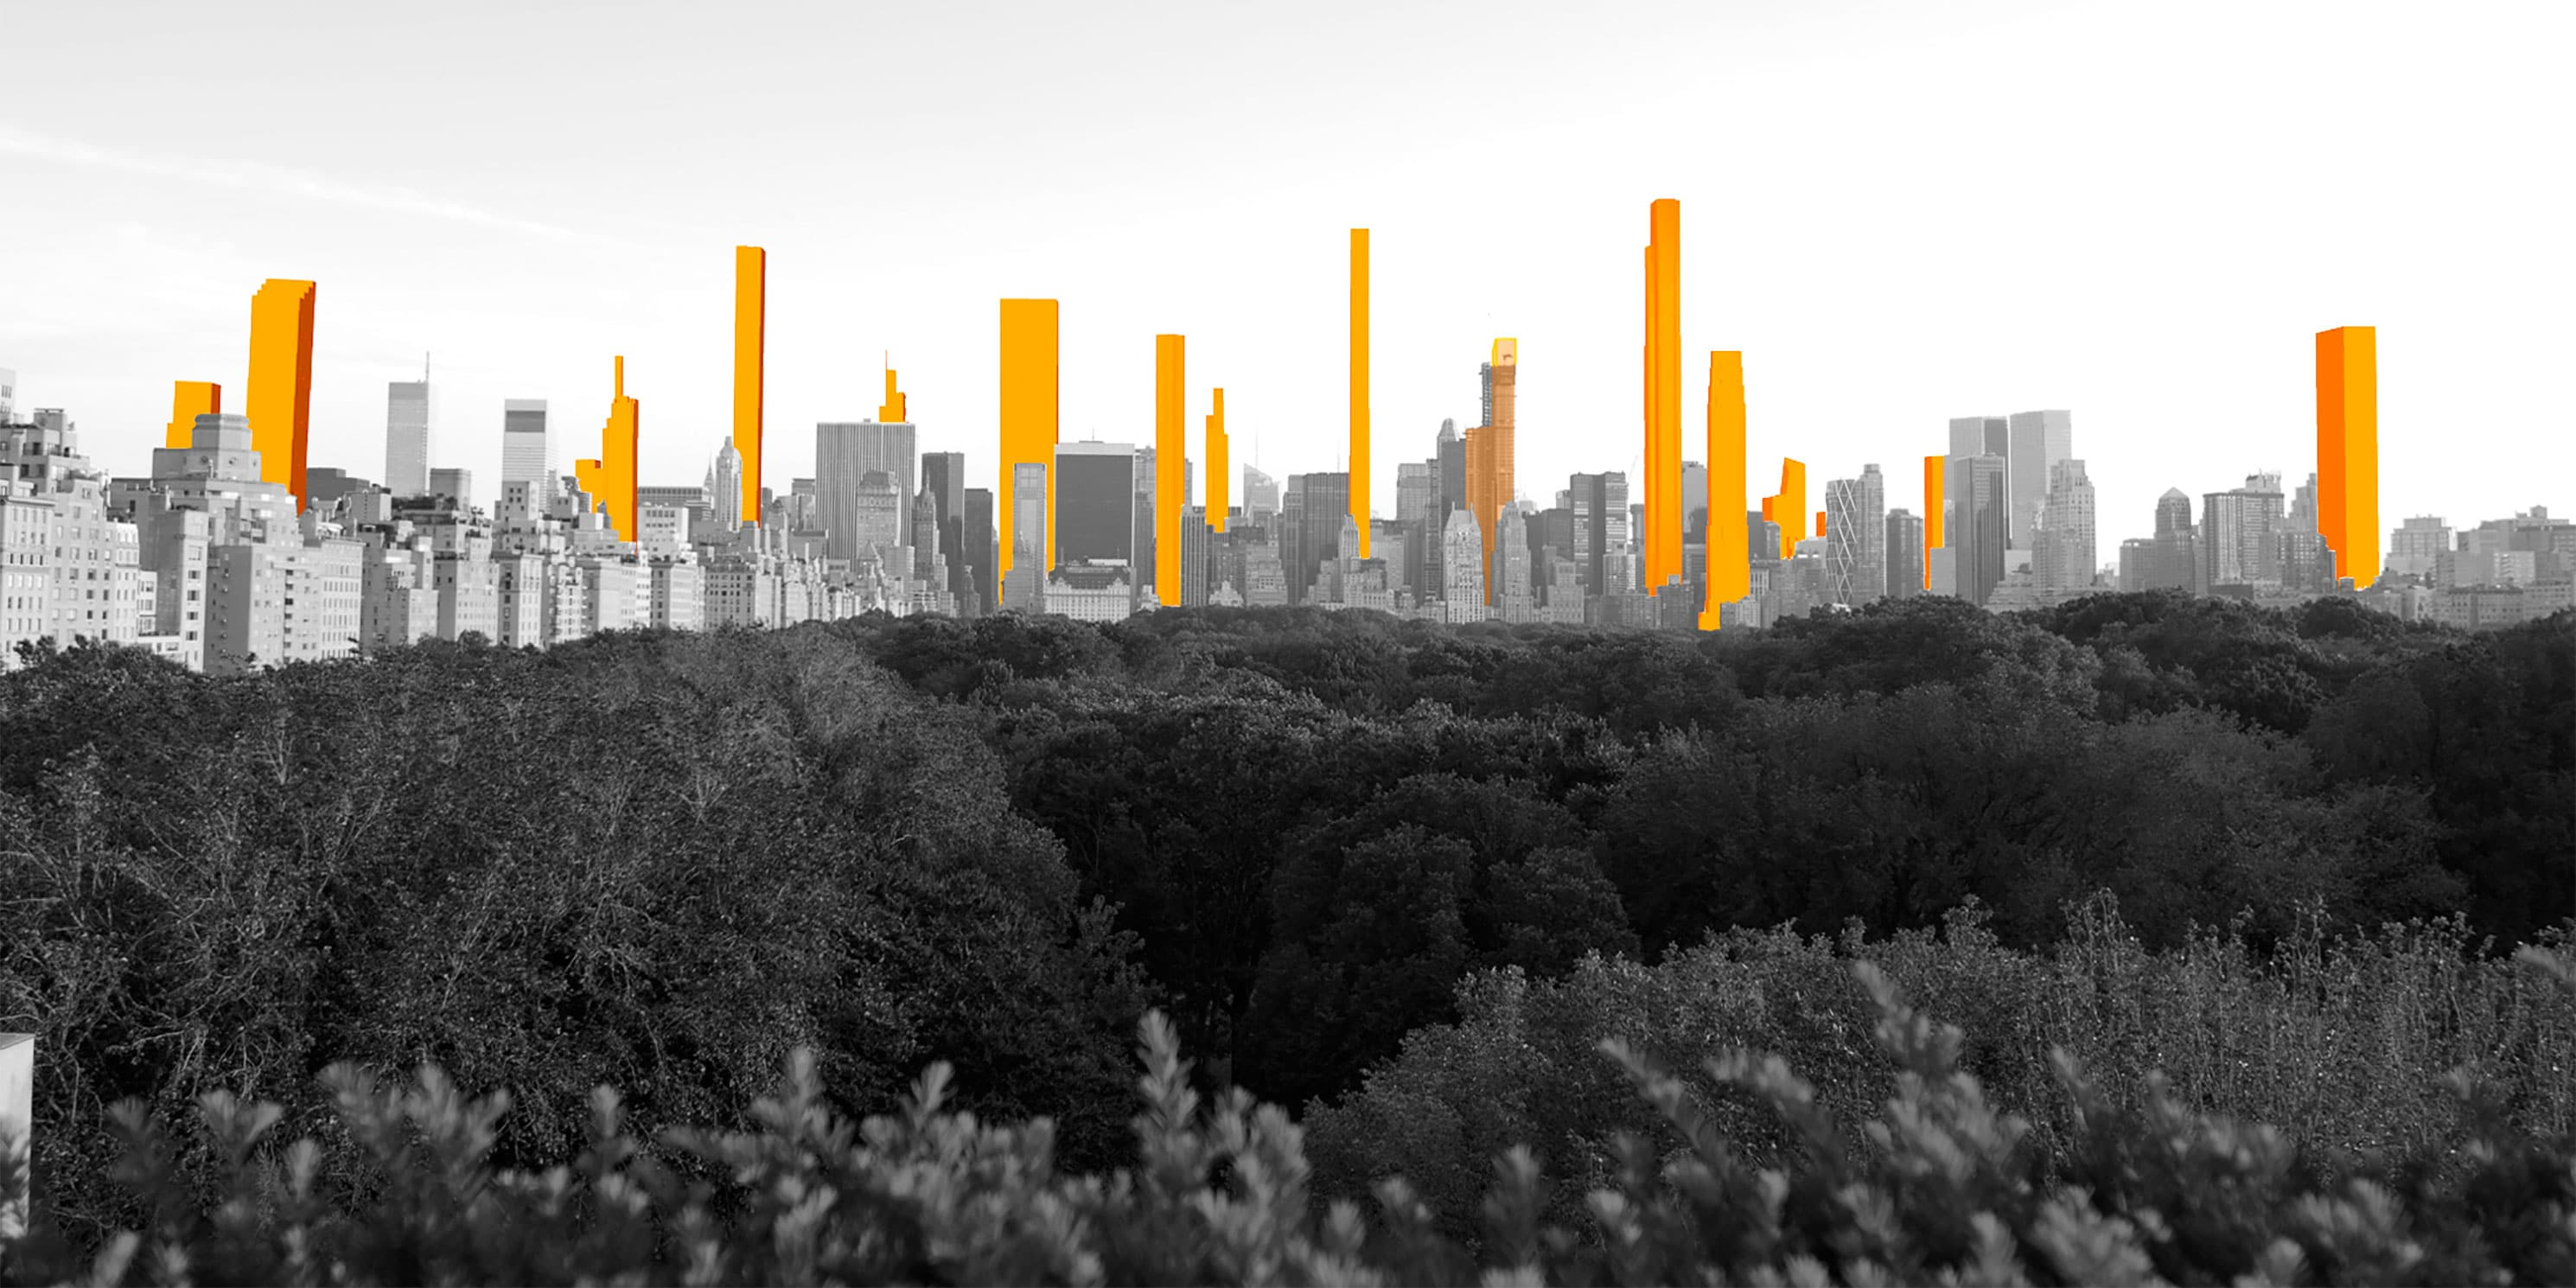 Rendering of the Manhattan skyline with proposed super-tall buildings.